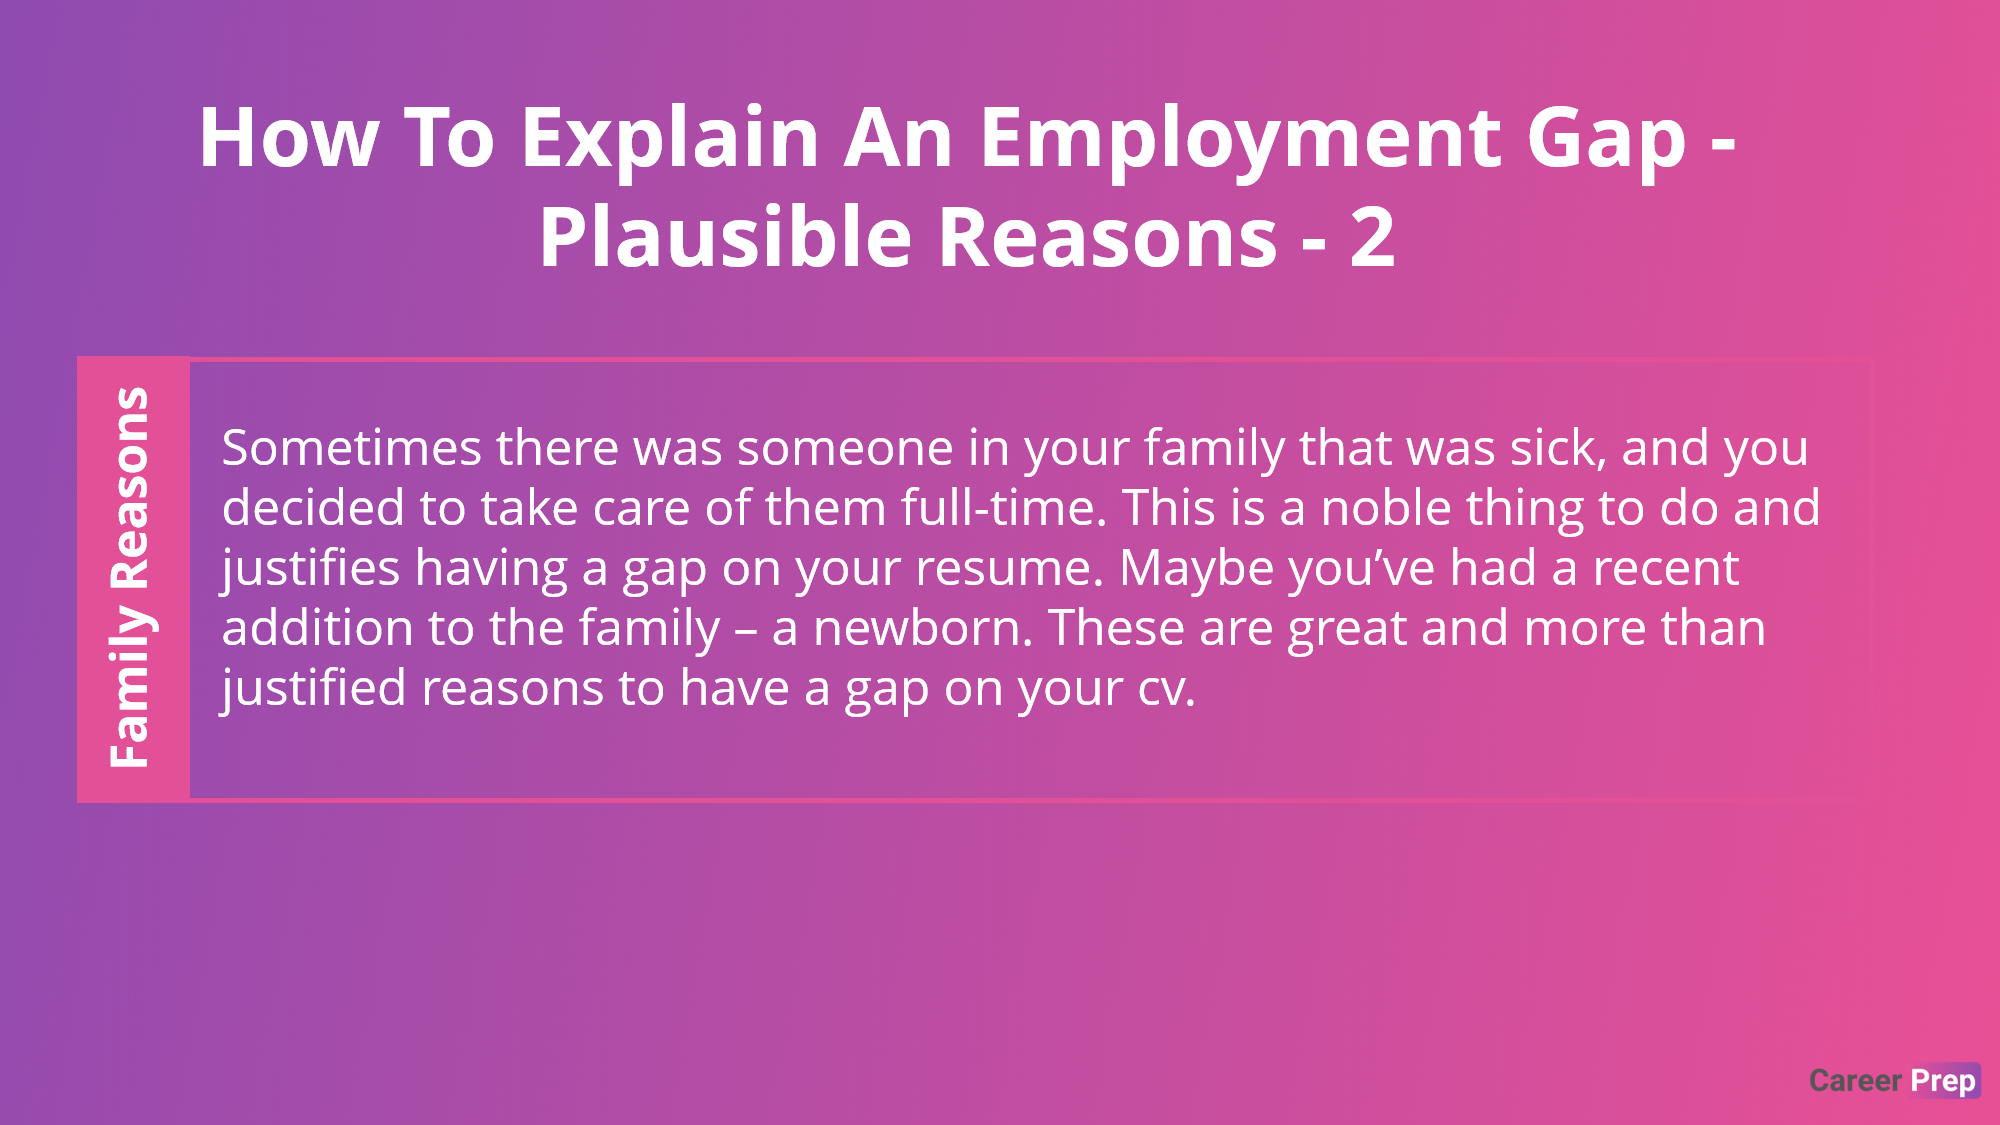 employment gaps reasons because of family reasons